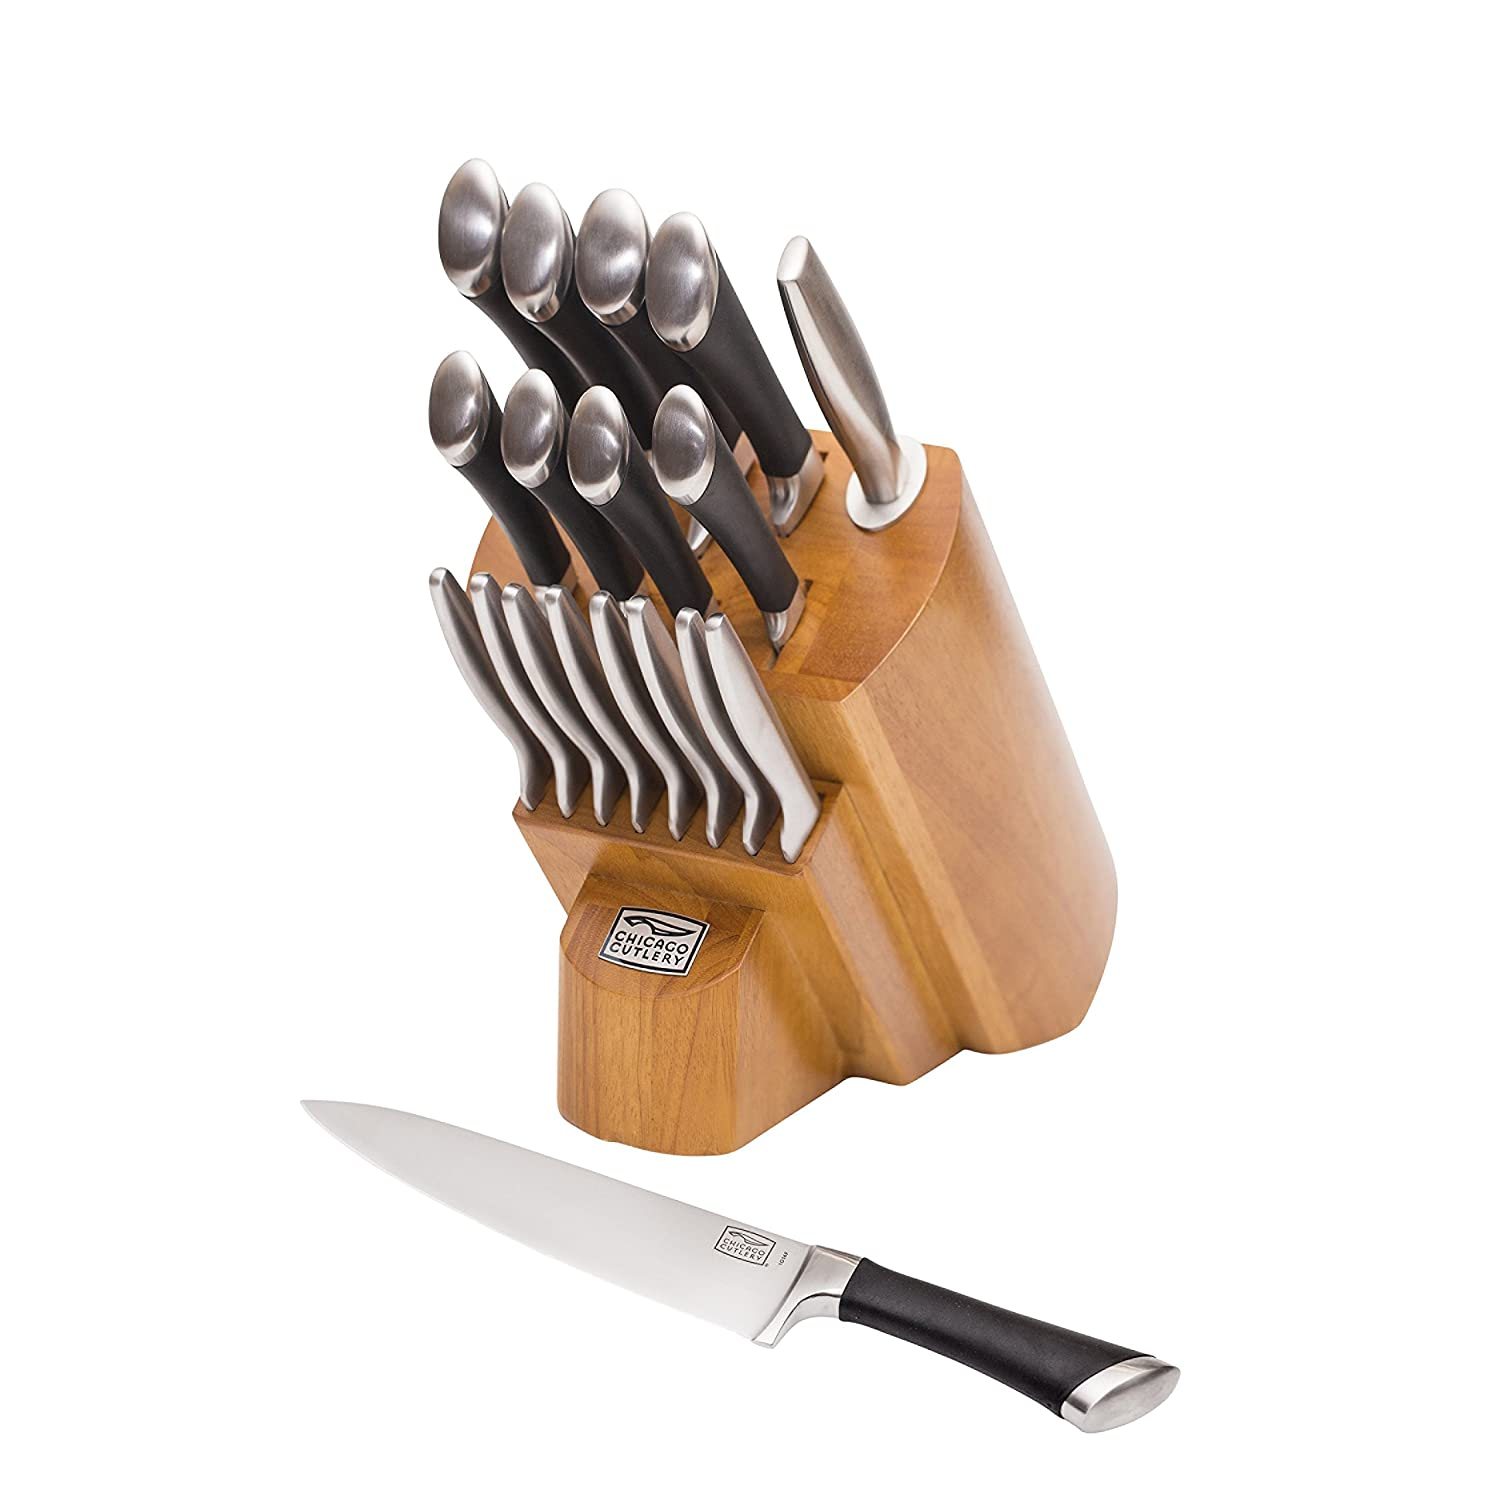 Chicago Cutlery 1119644 Fusin Forged 18-piece Knife Block Set